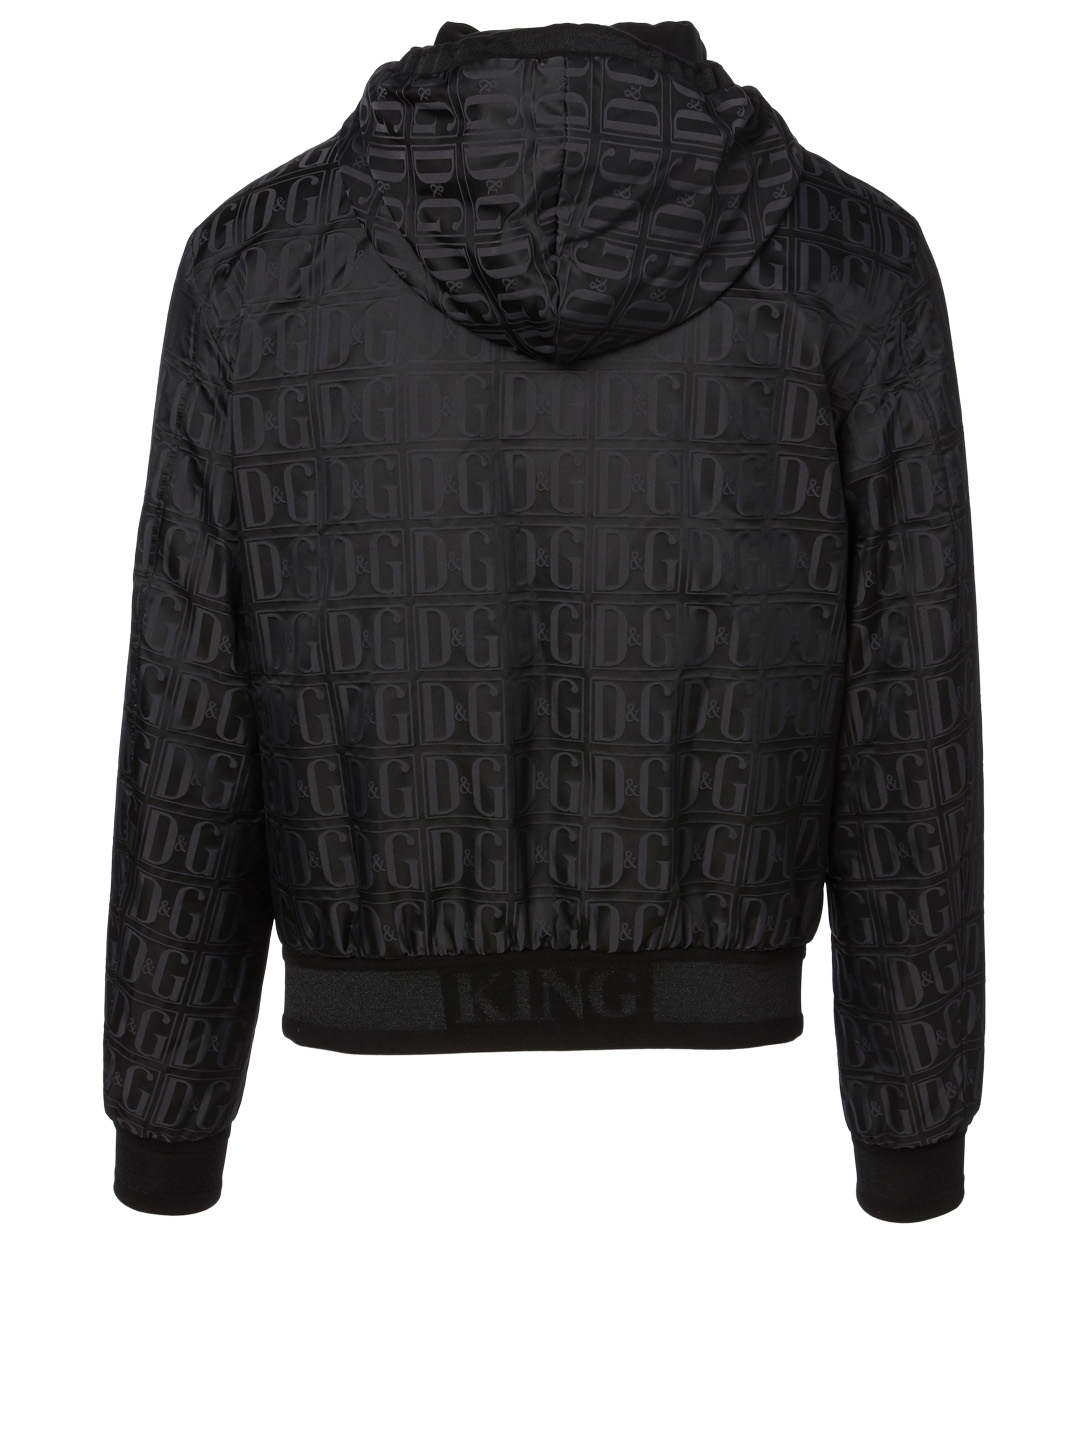 DOLCE & GABBANA Logo Jacket With Hood Men's Black